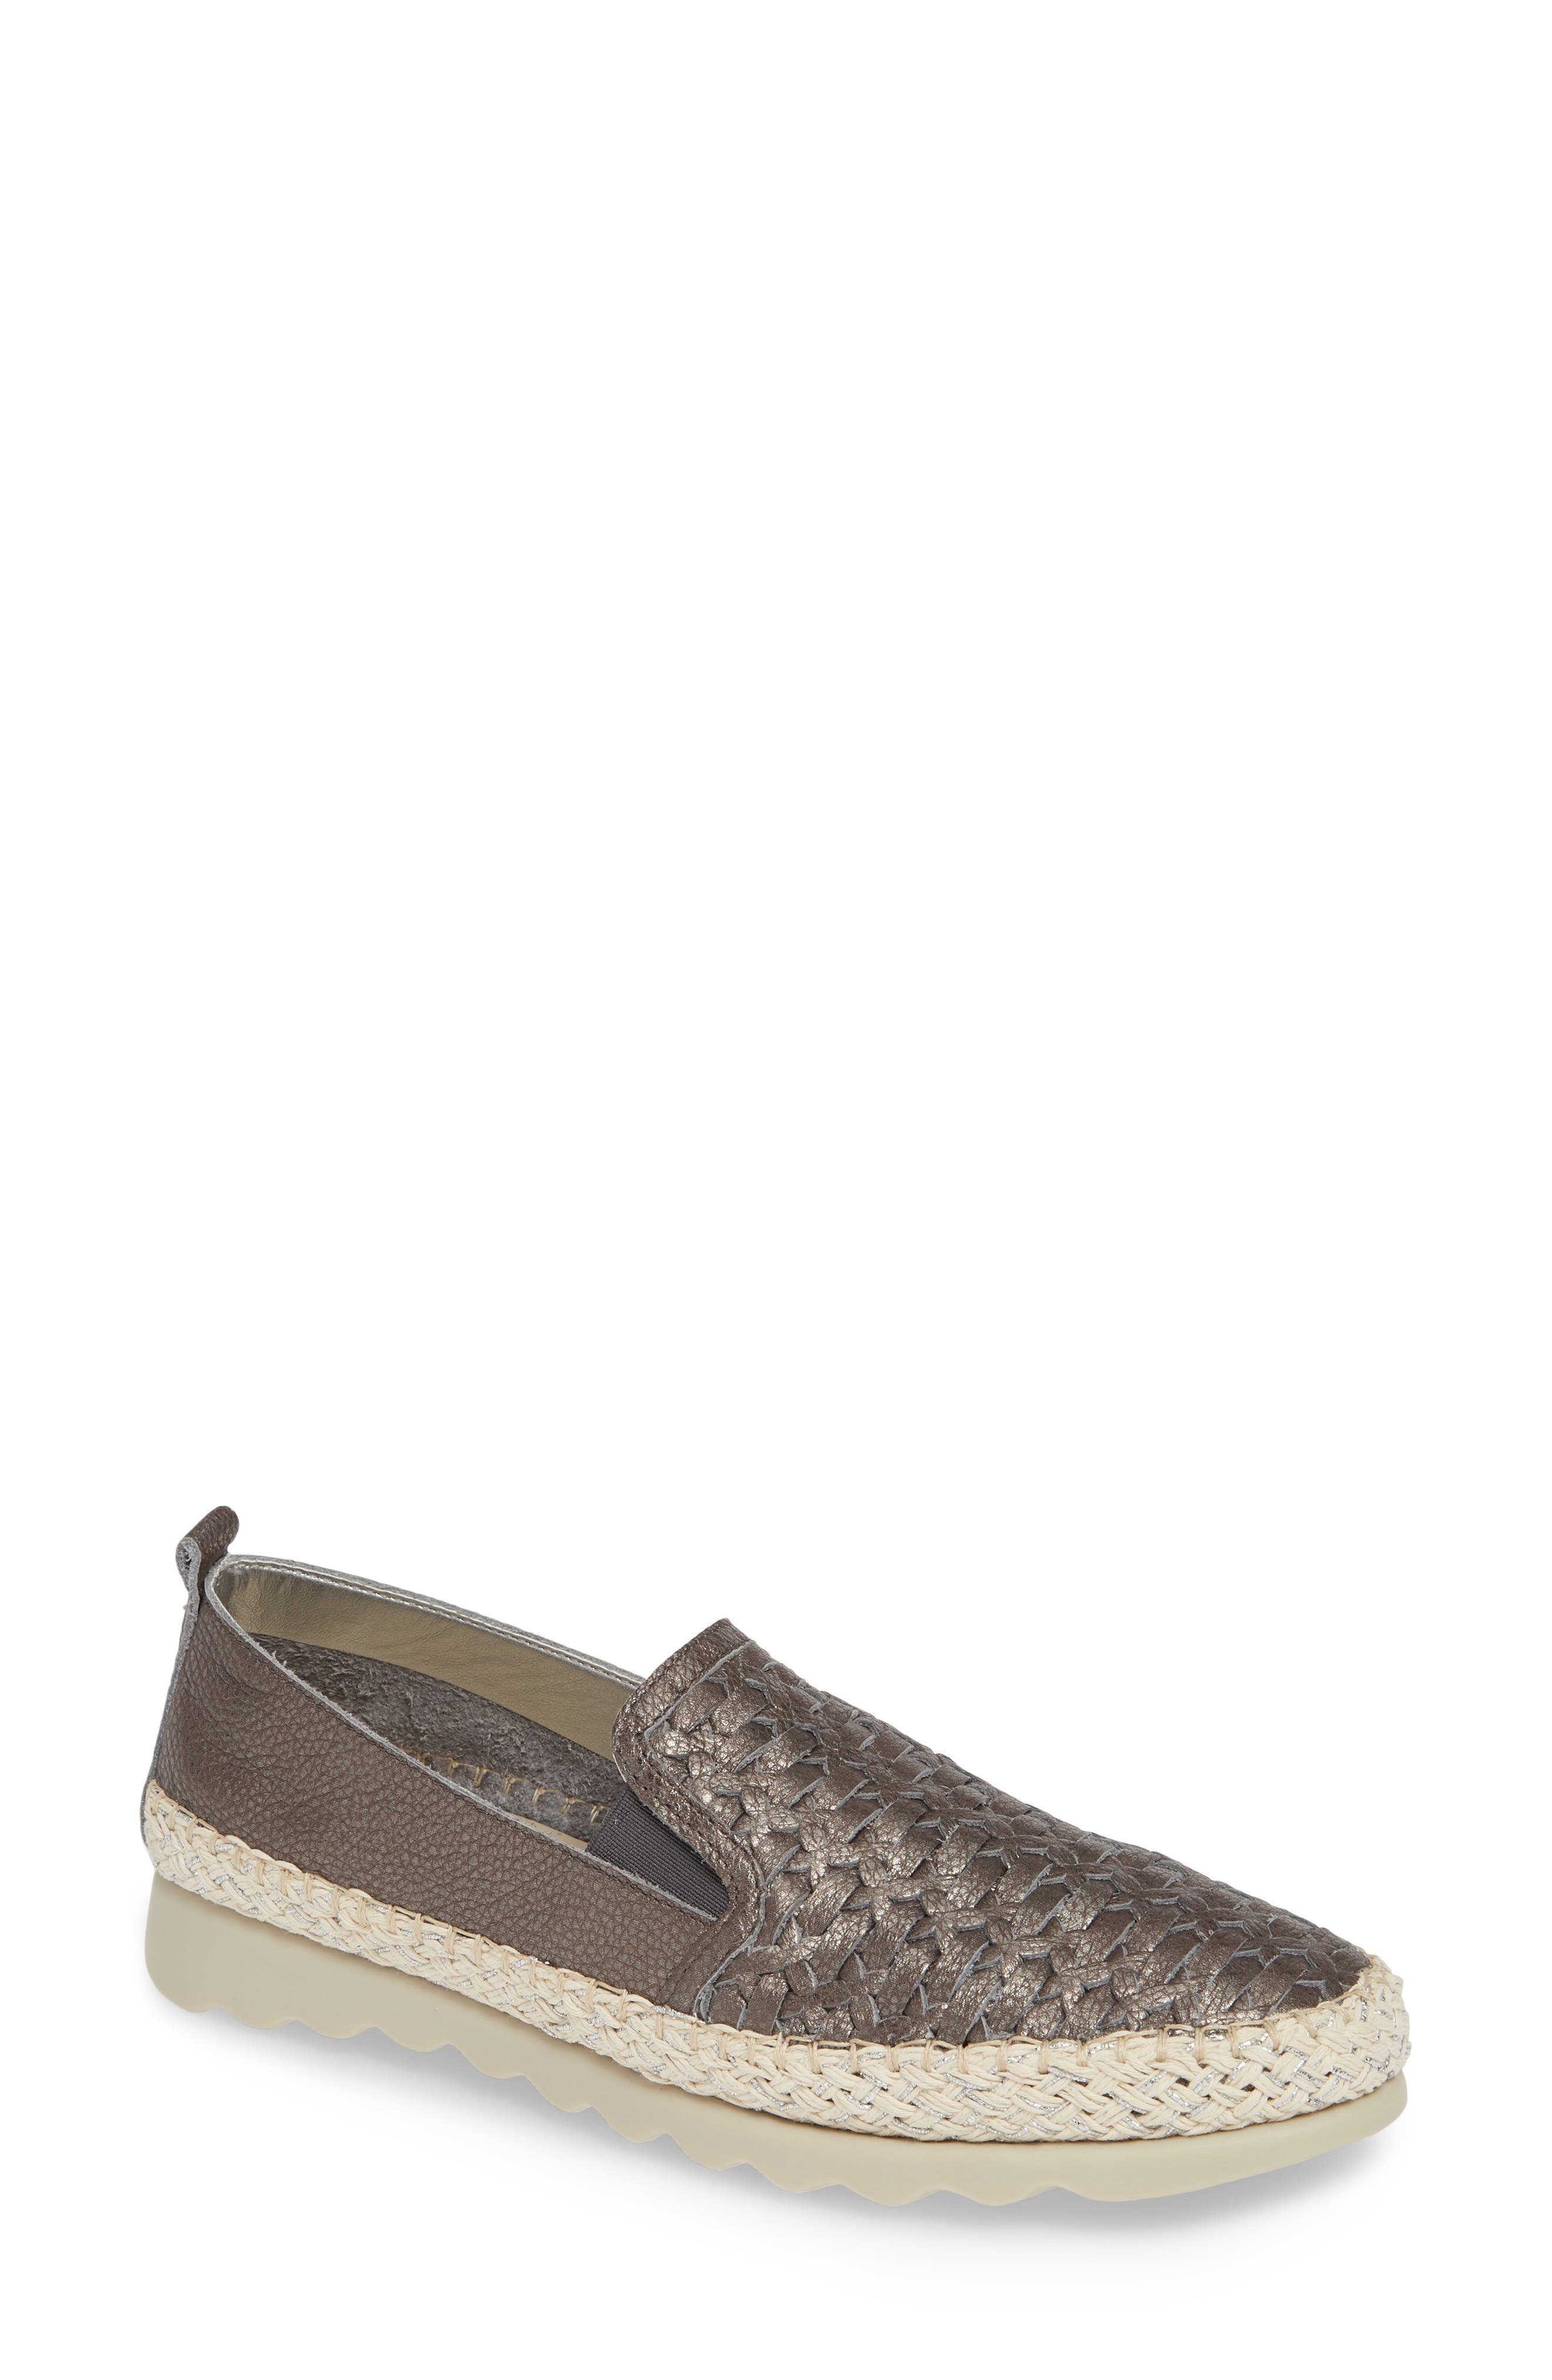 Chapter Woven Slip-On Sneaker,                             Main thumbnail 1, color,                             CANNA DI FUCILE CURTIS LEATHER